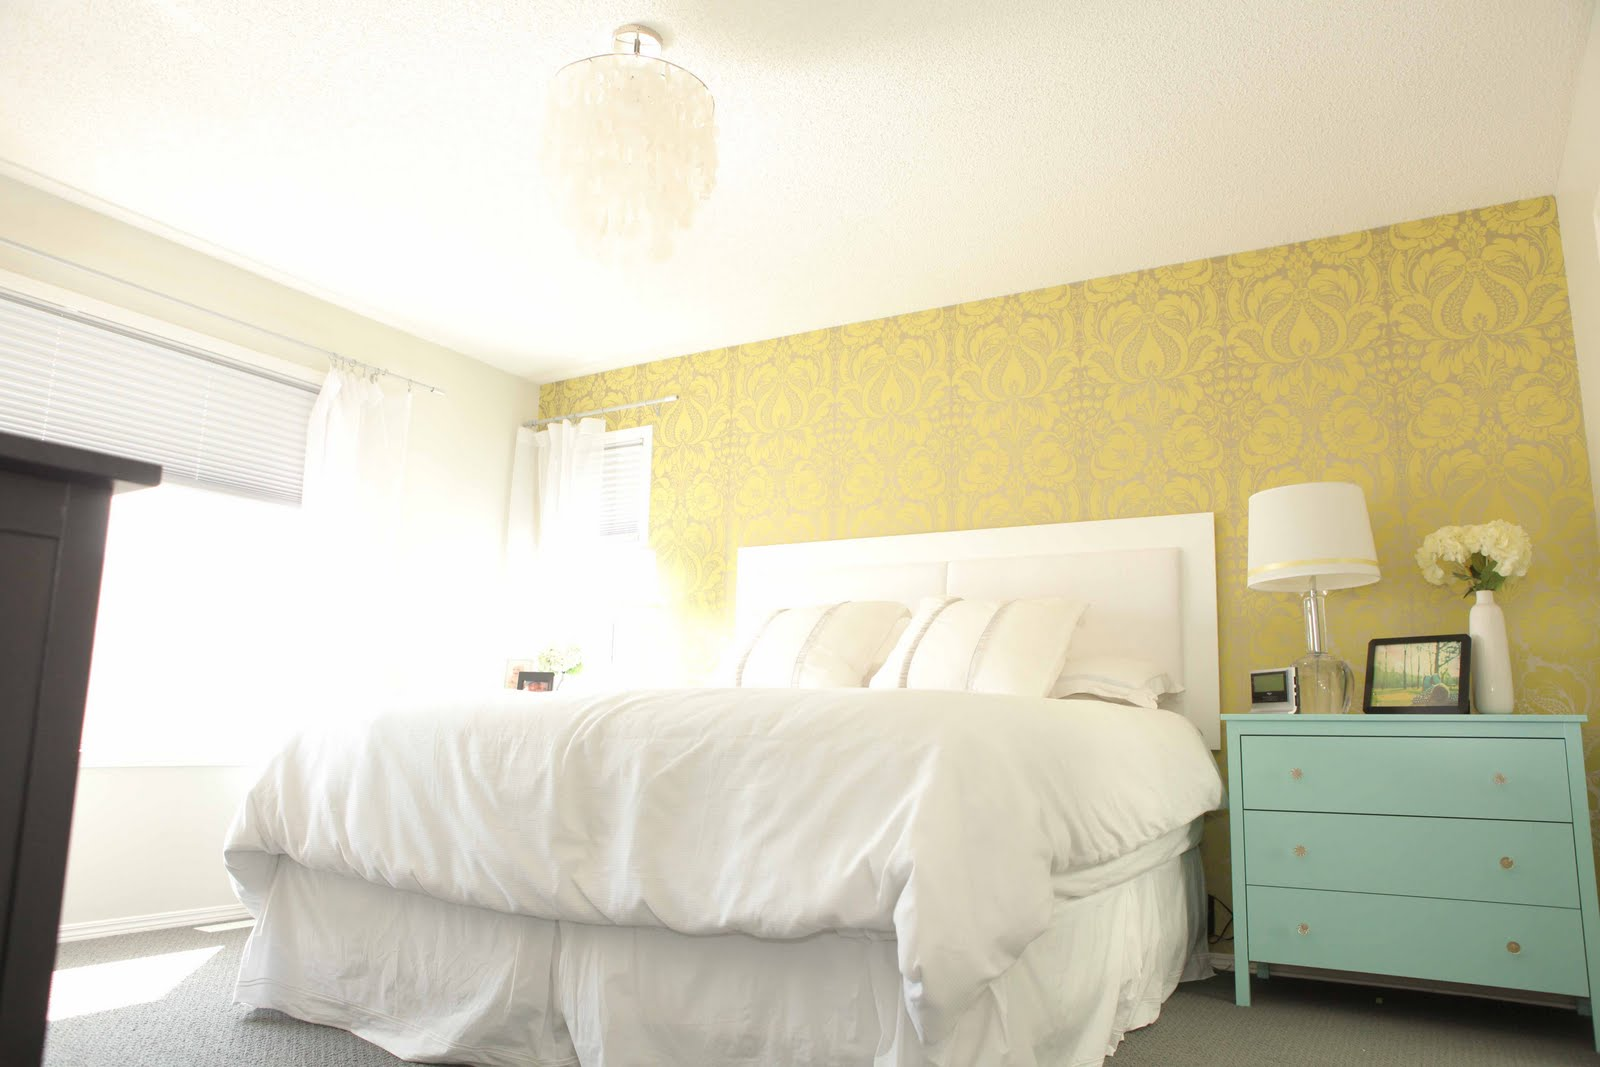 Beach House In The City Room Tour Master Bedroom And